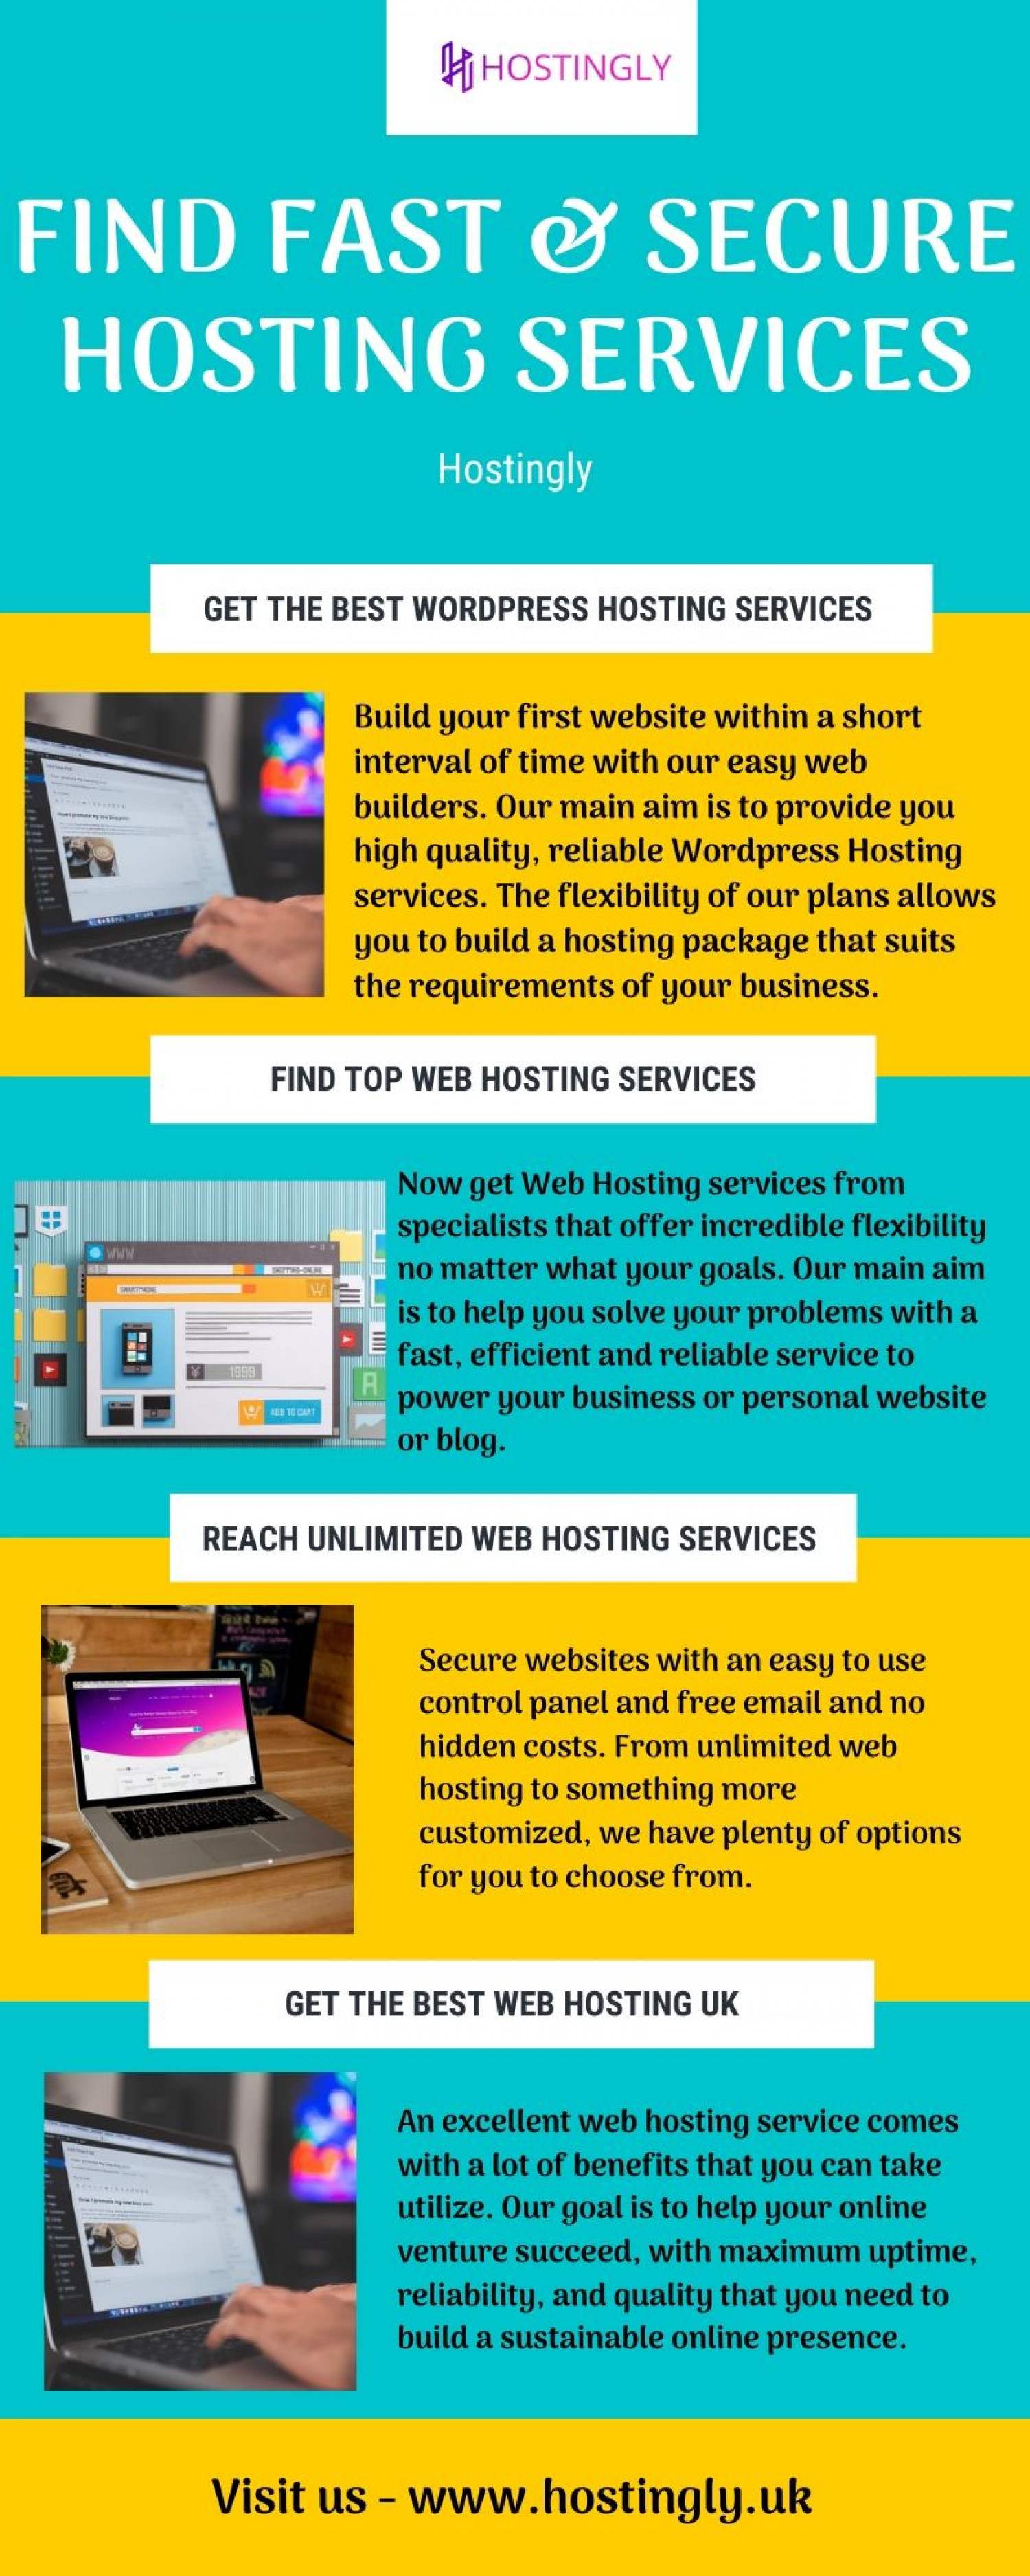 Find fast and secure hosting services in the UK Infographic